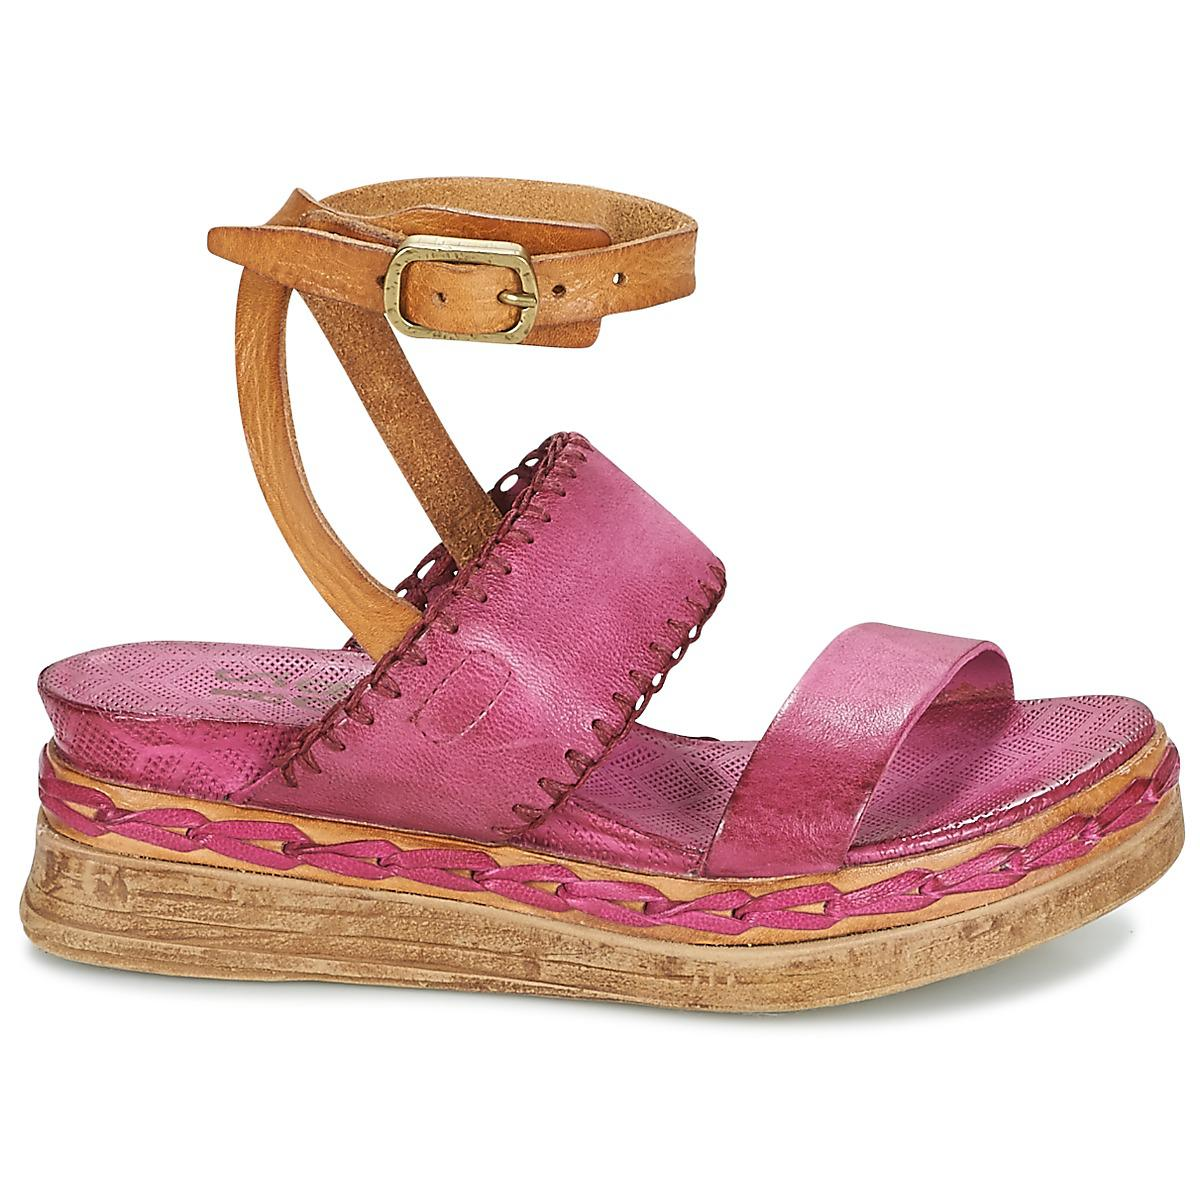 Airstep A S 98  Lagos Women's Sandals In Pink  Lyst  View fullscreen